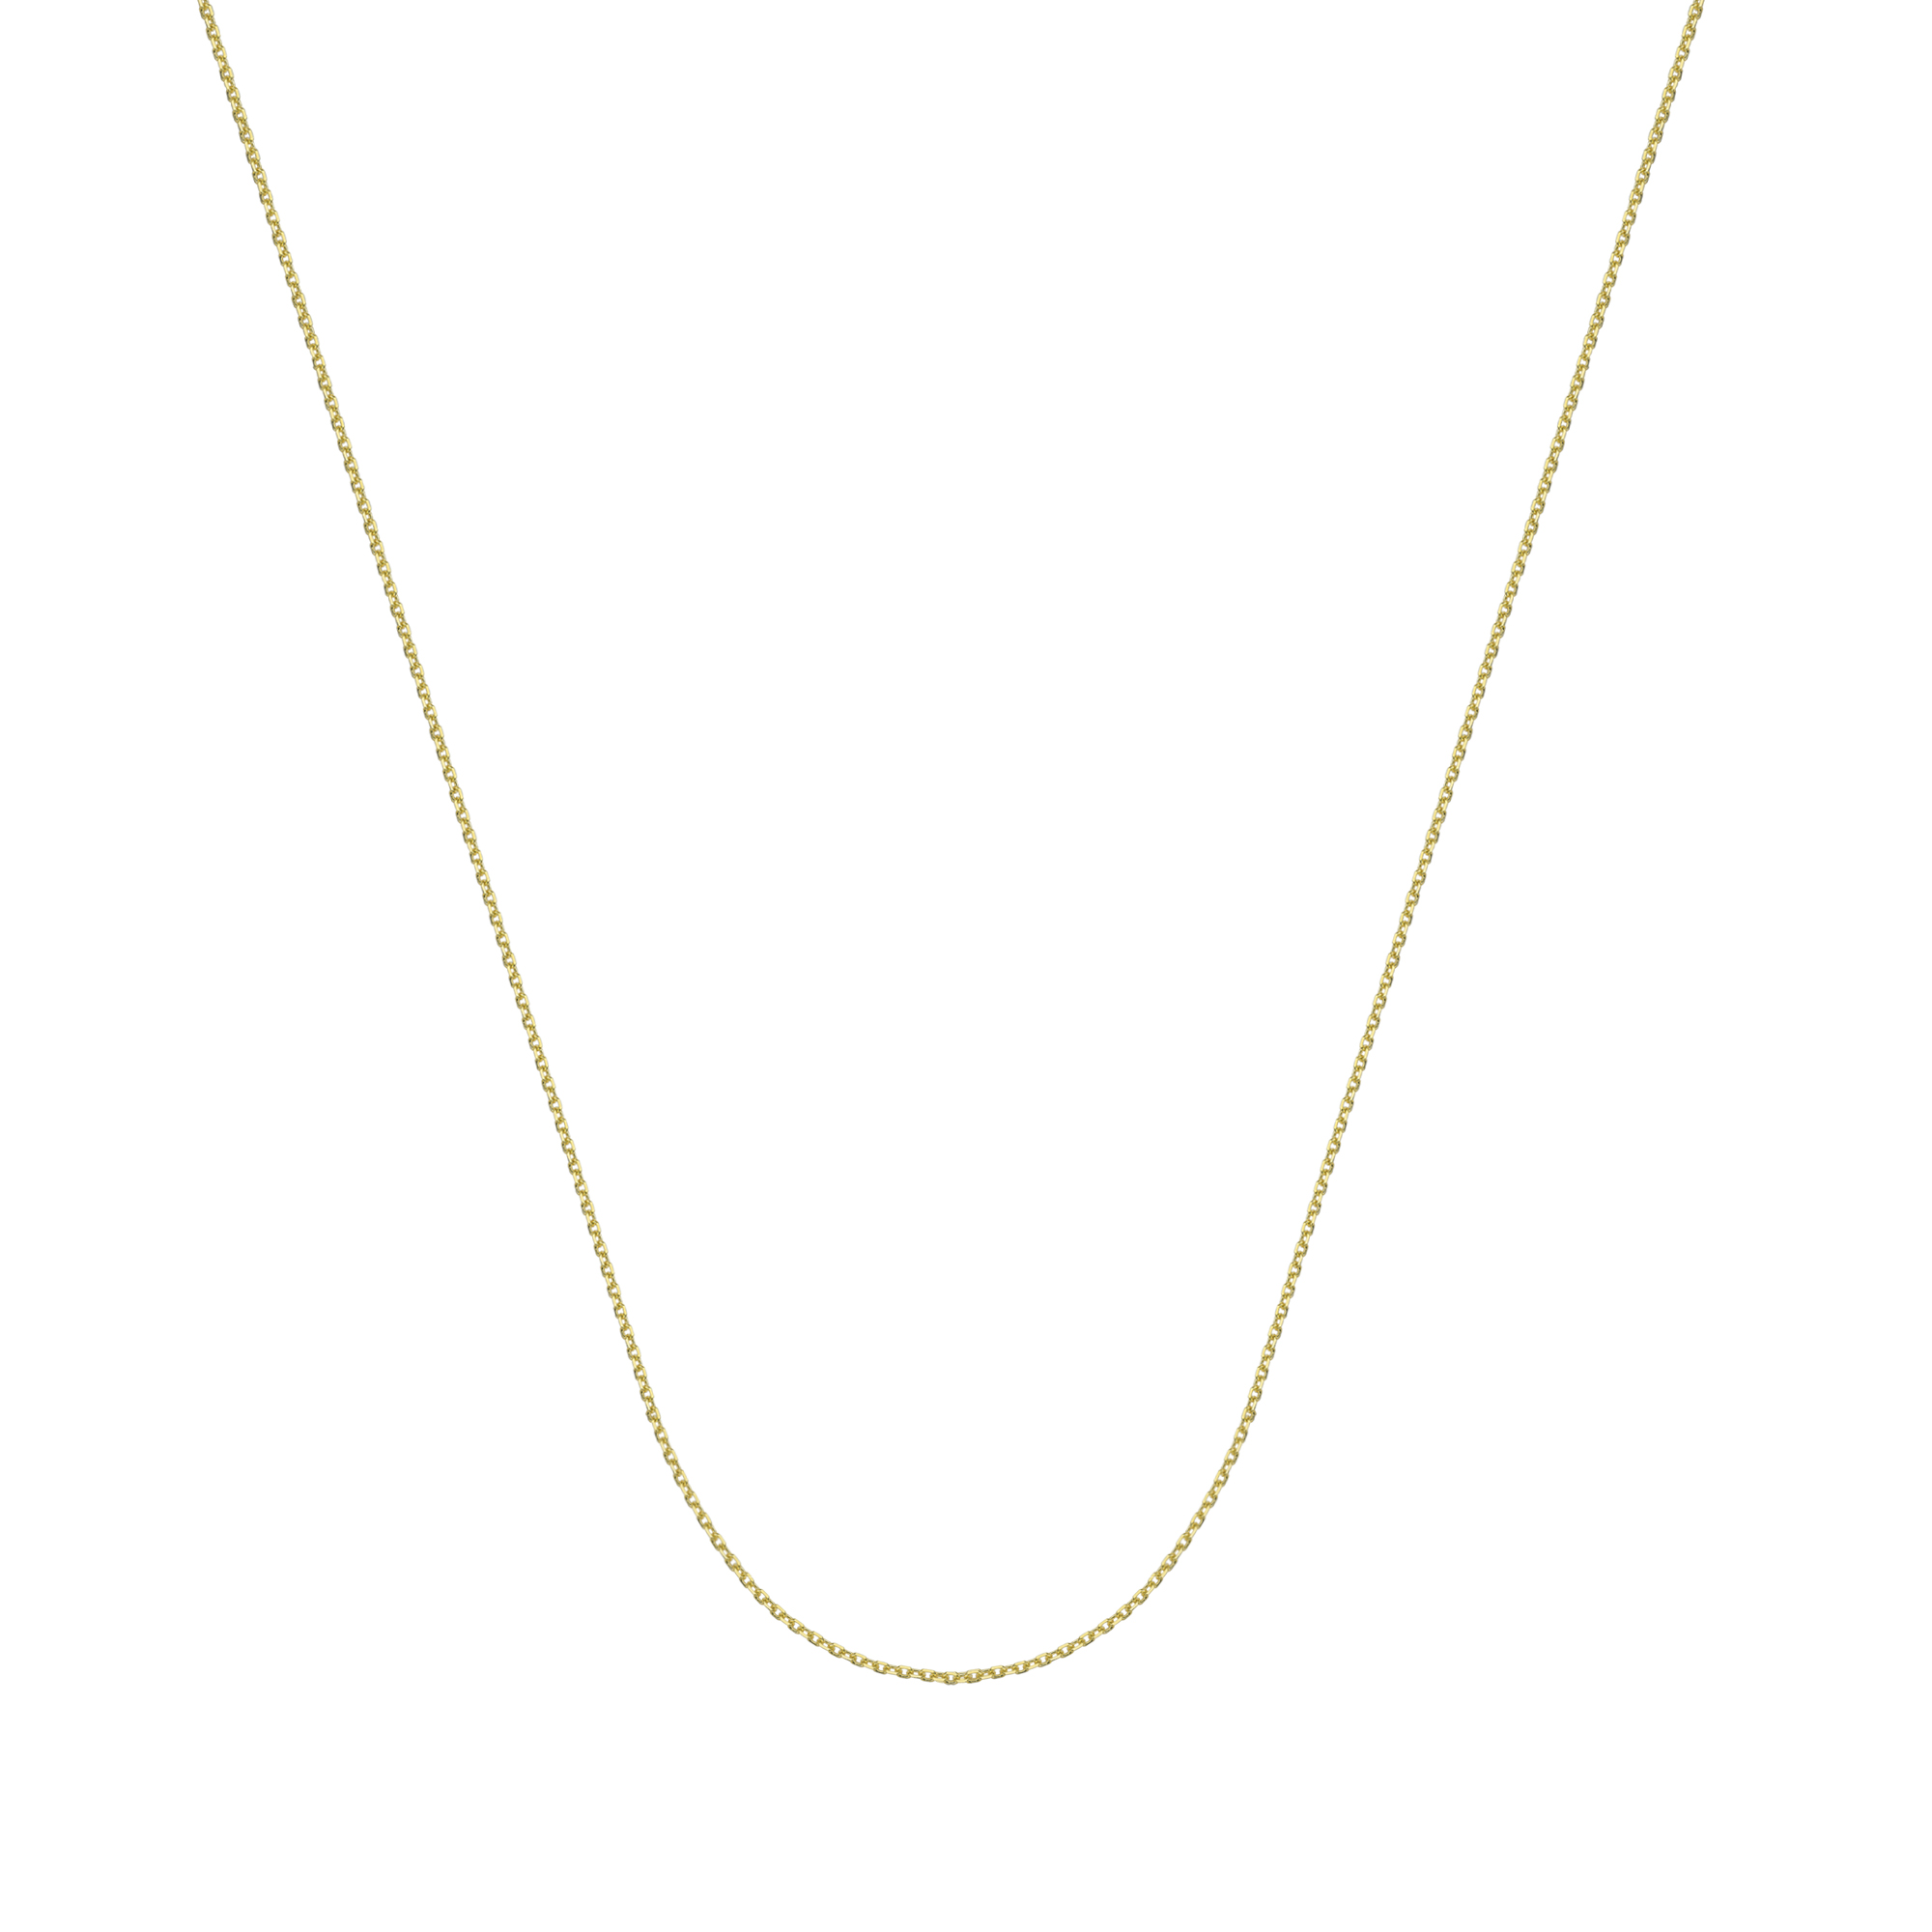 14Kt Gold Diamond Cut Cable Chain With Lobster Lock 20 Inches Long Cable Chain